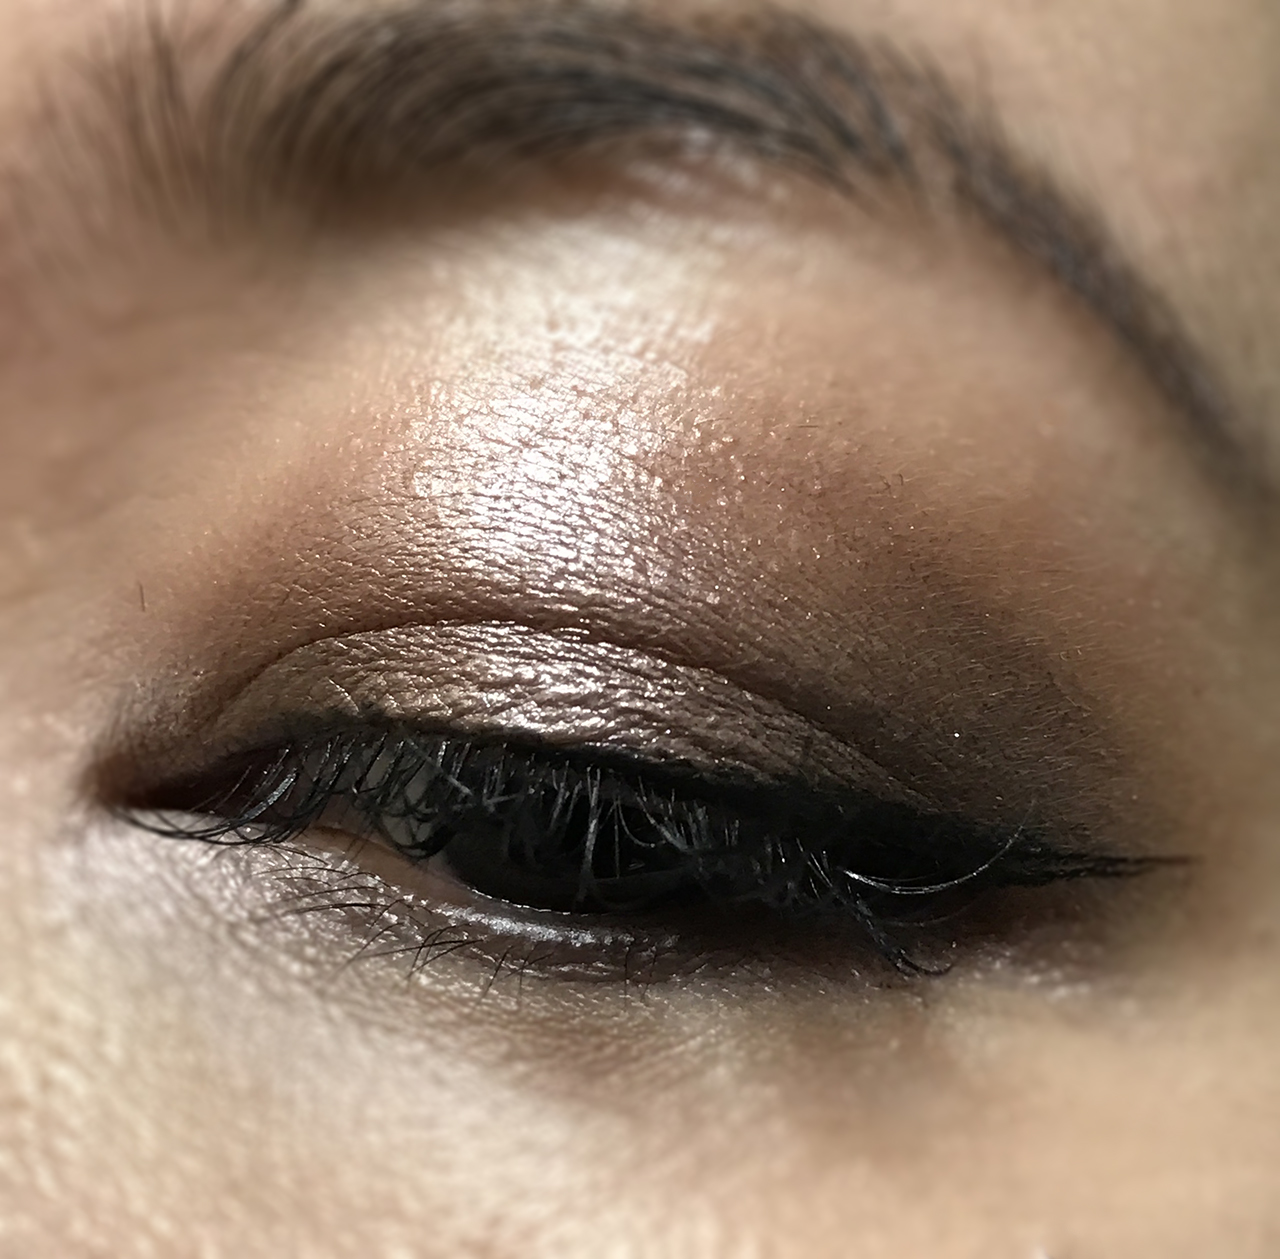 Chanel Les 4 Ombres City Lights eye makeup look